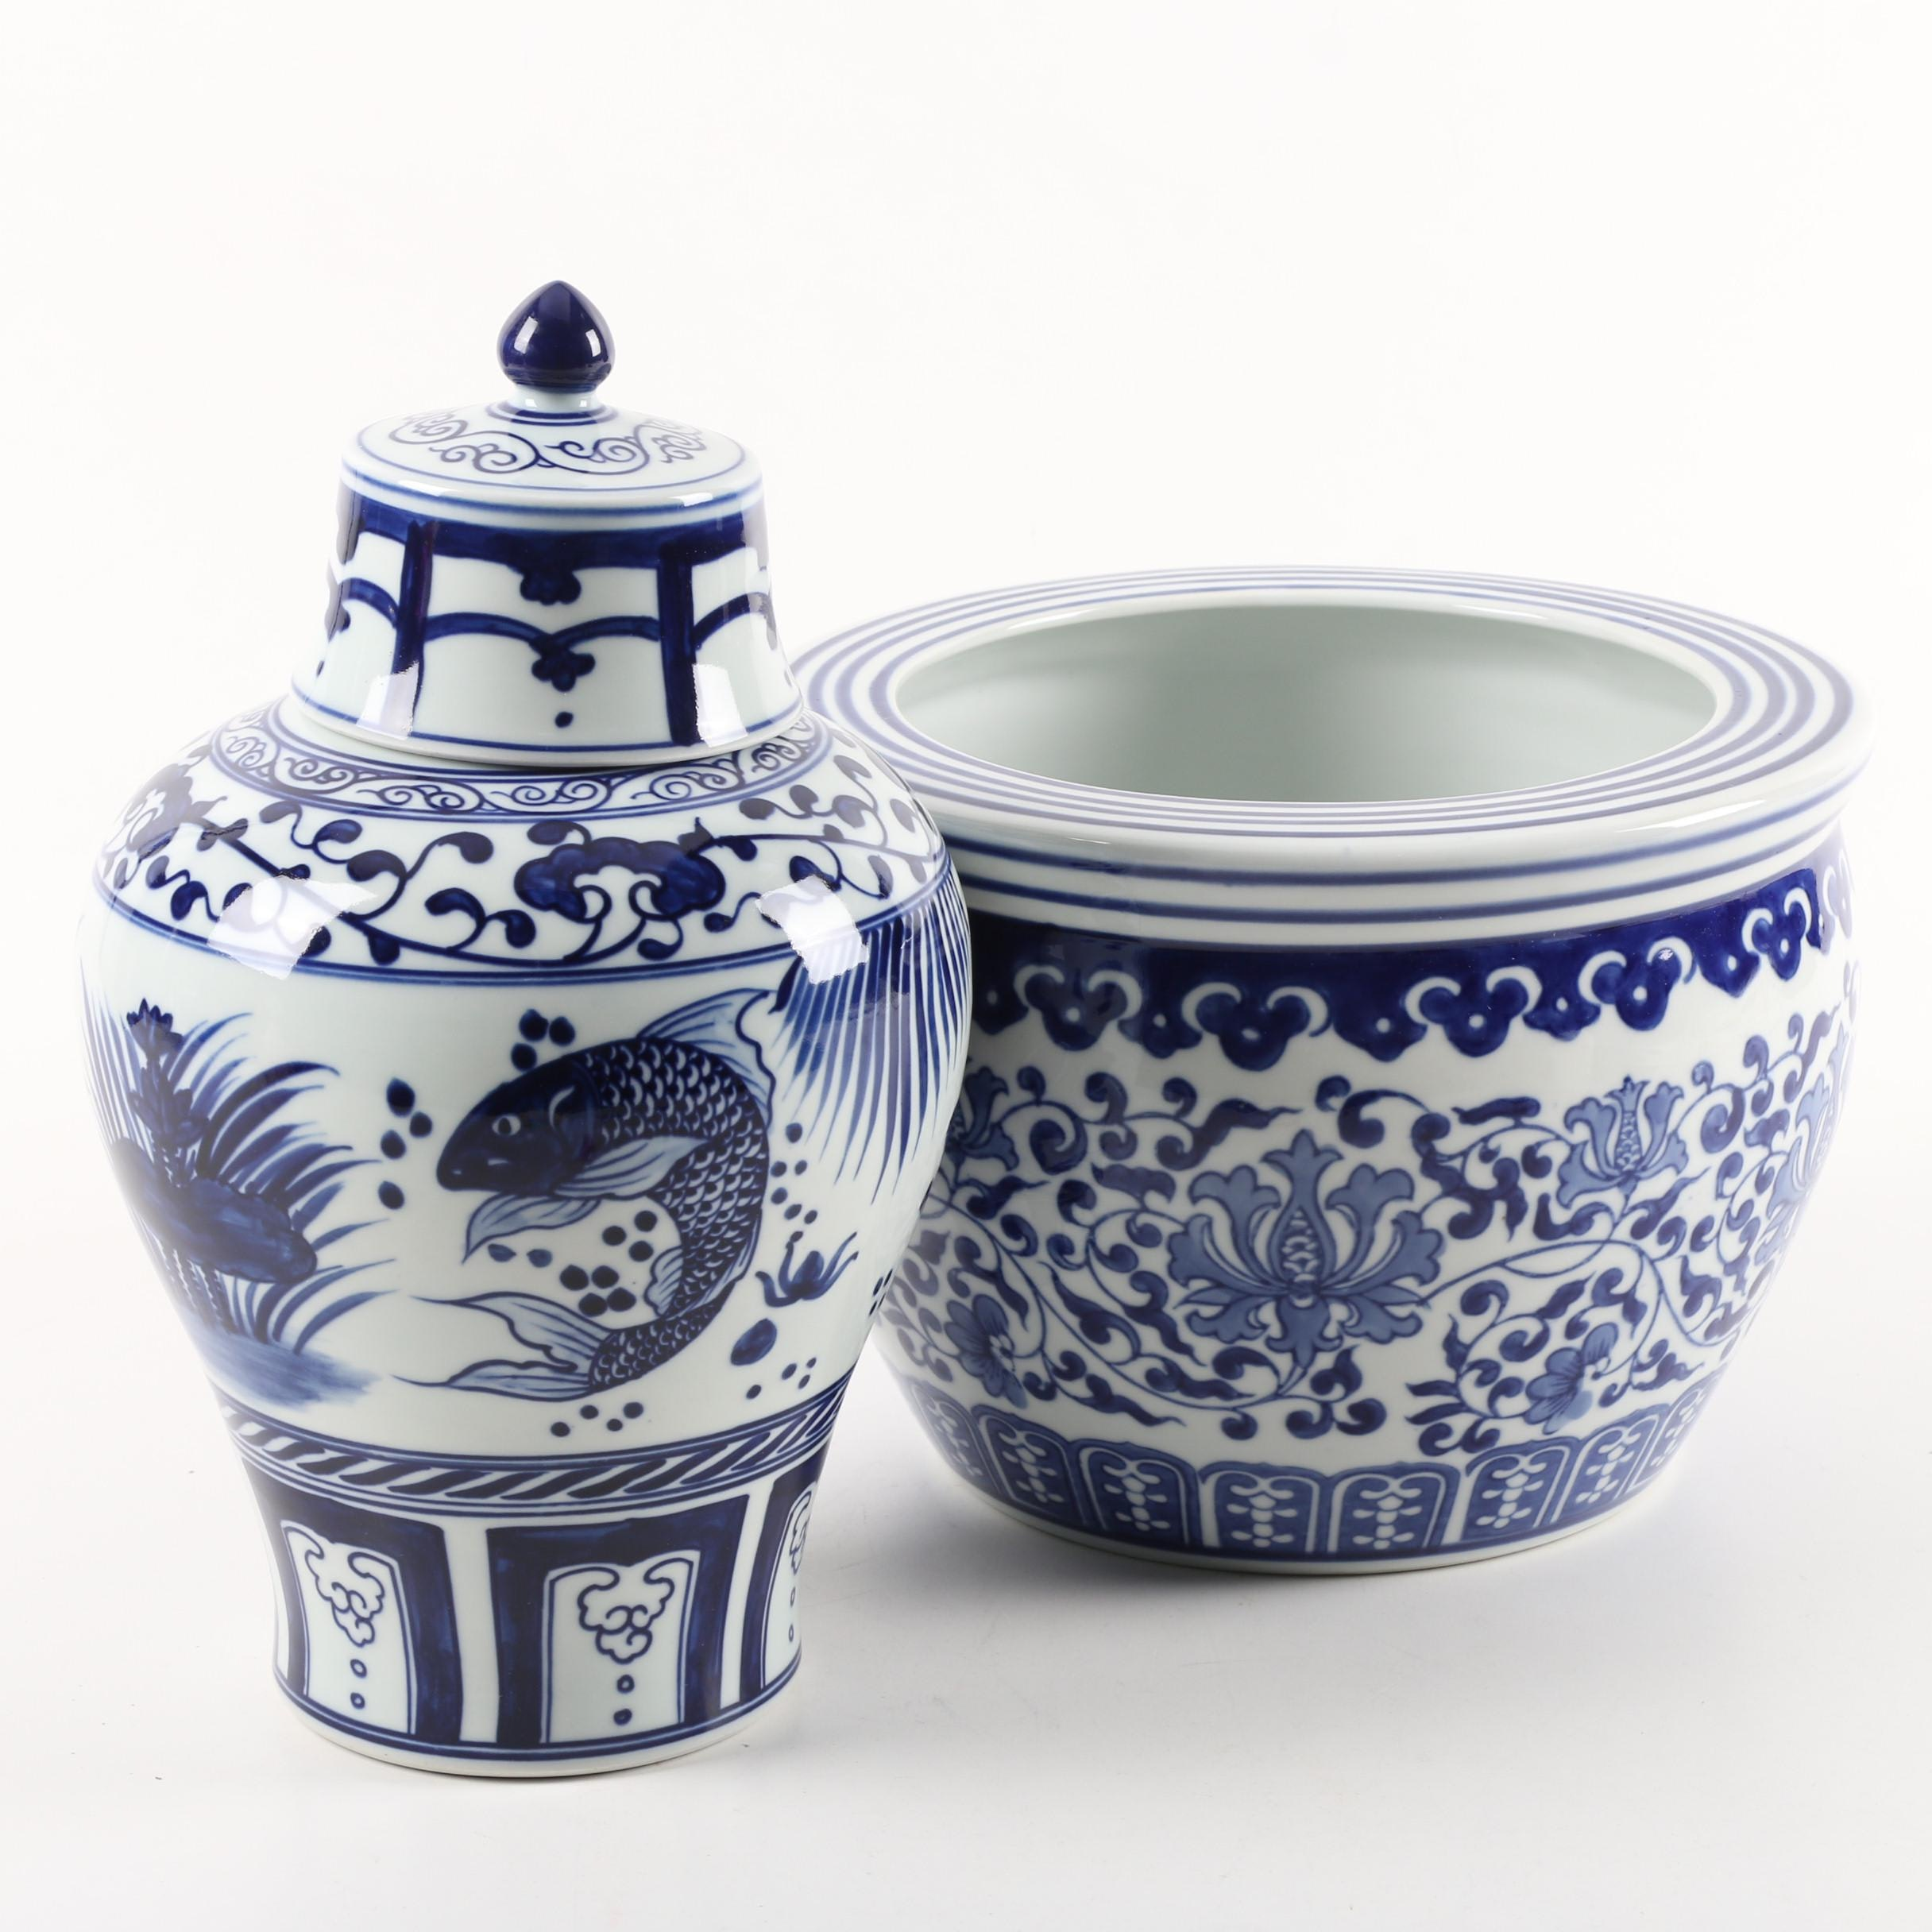 Williams-Sonoma Blue and White Fish Bowl Planter and Chinoiserie Urn